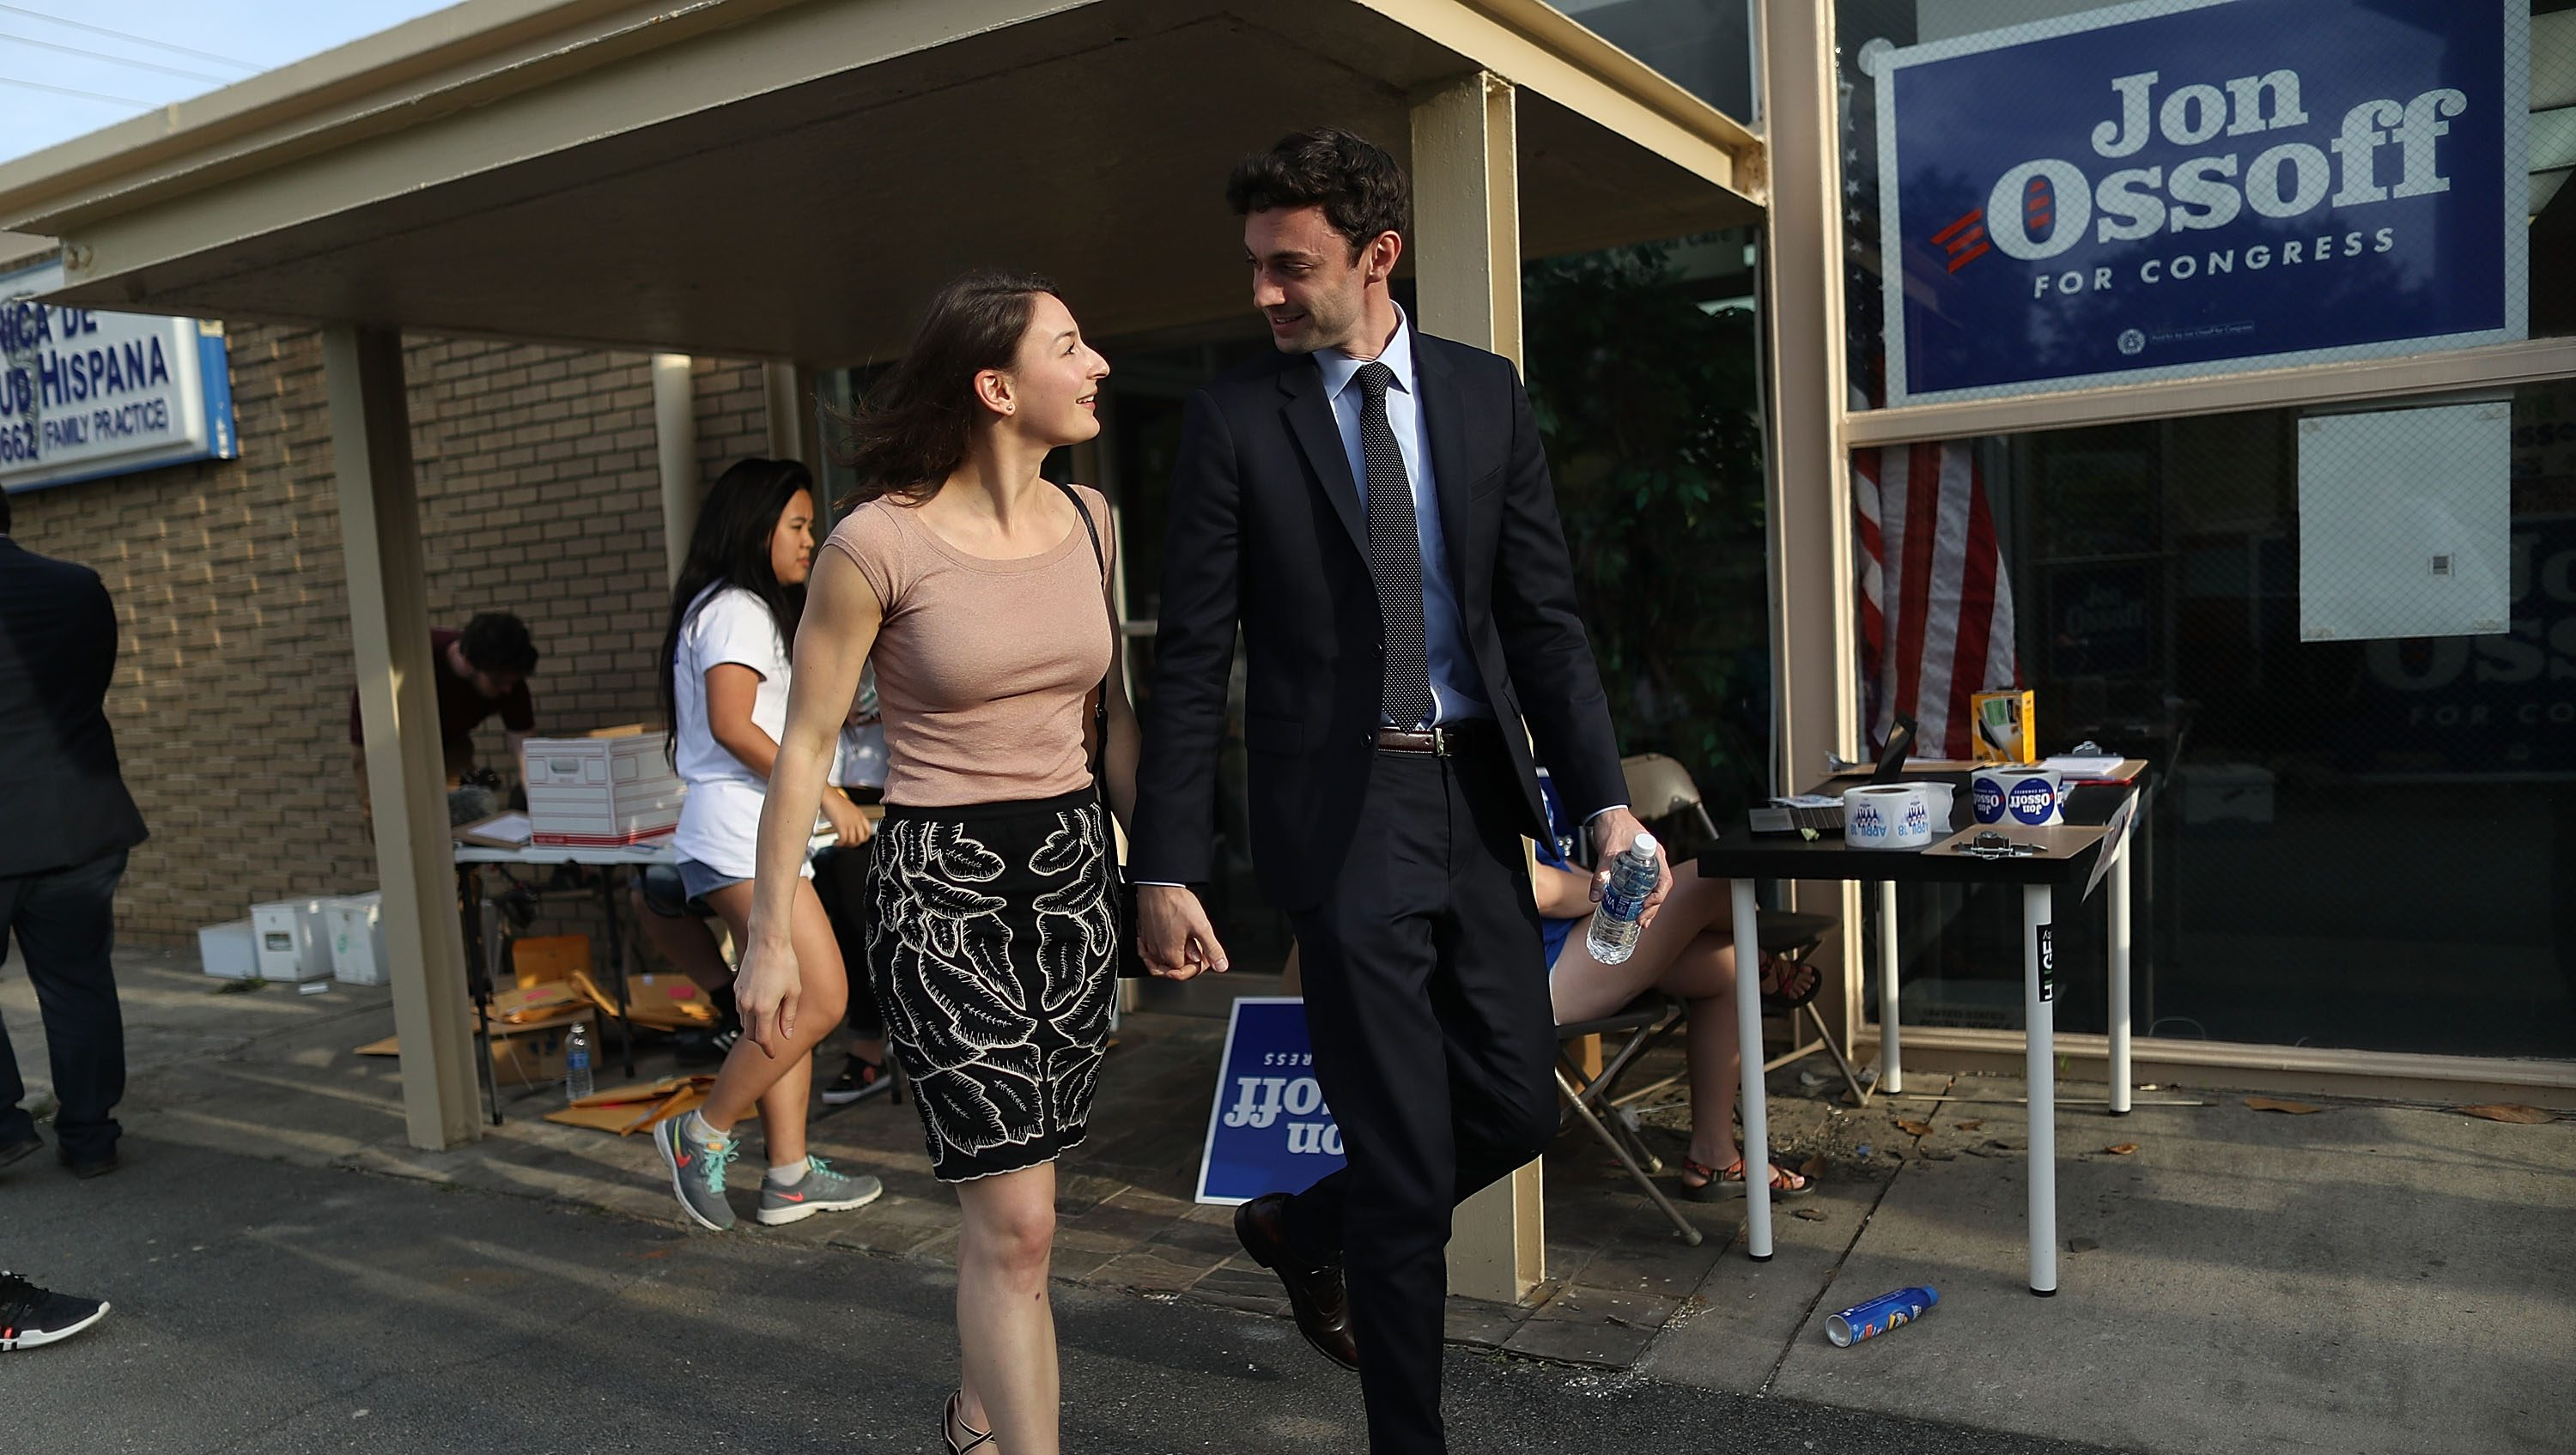 Jon Ossoff girlfriend, Jon Ossoff wife, Alisha Kramer